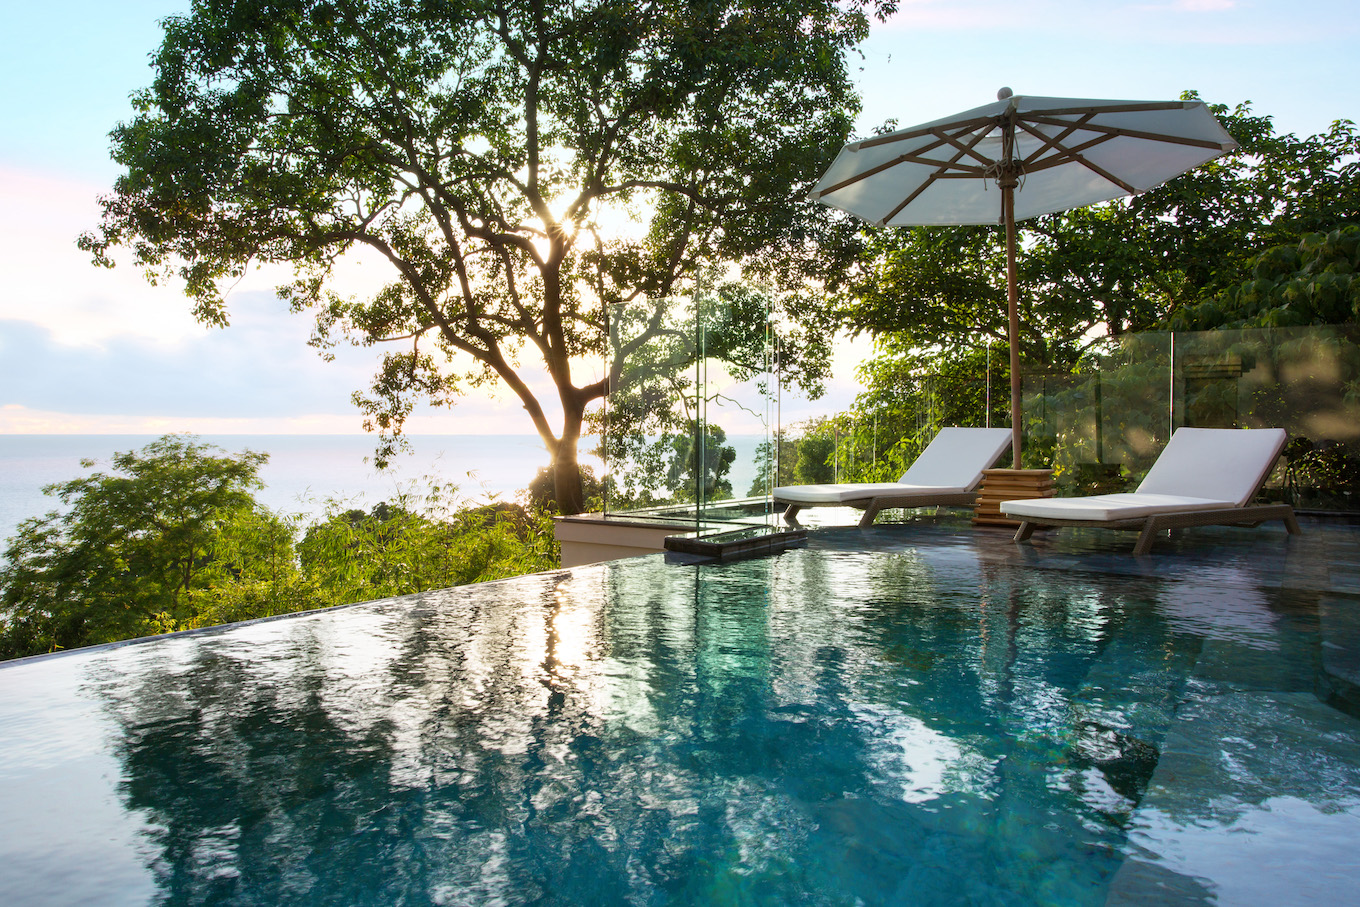 Luxury Phuket Resort, Trisara, Garners Coveted 2017 Culinary & Travel Awards